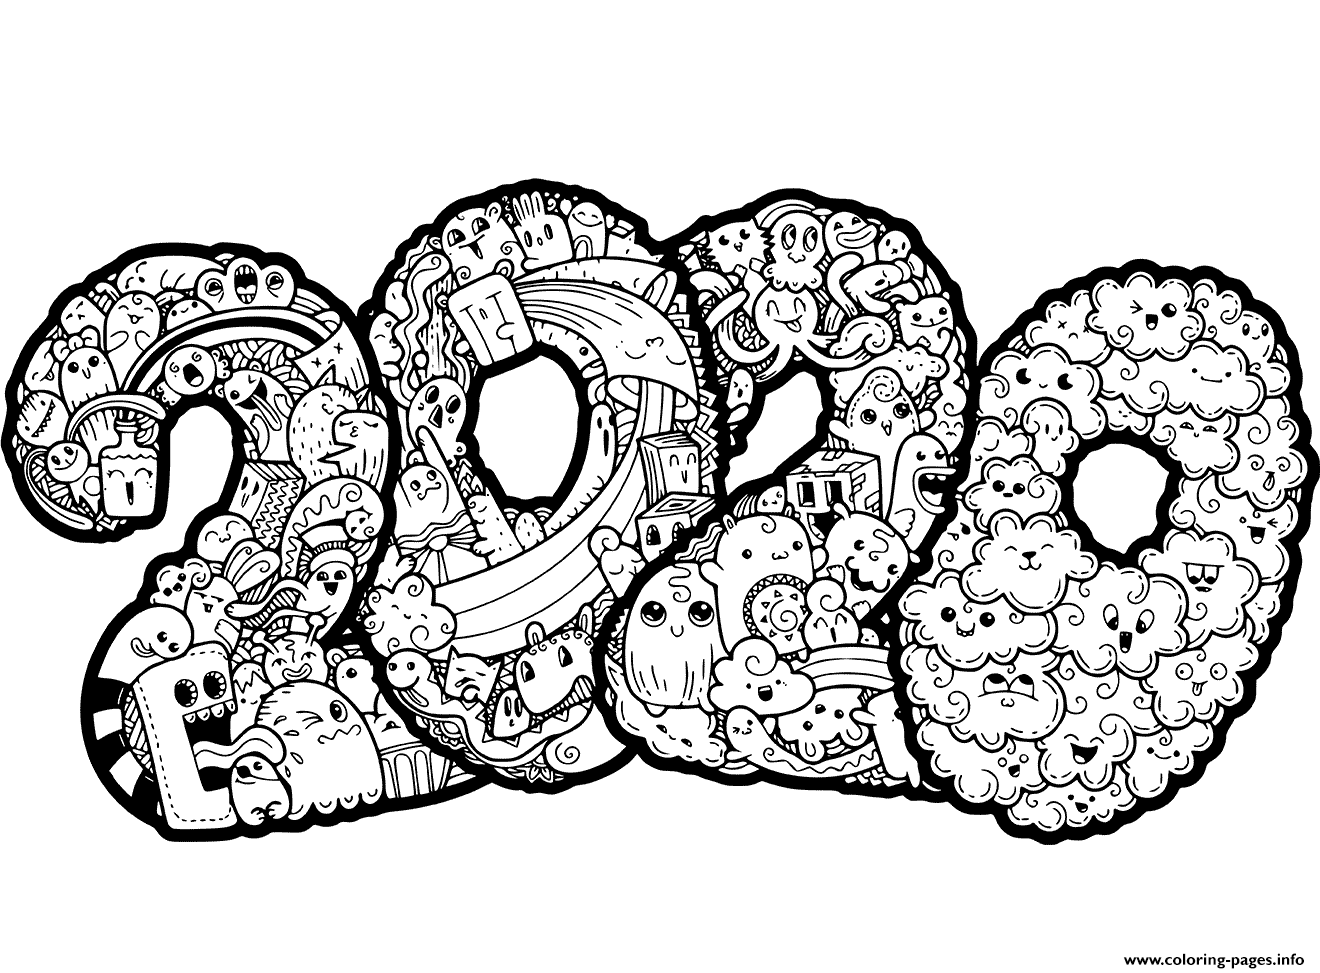 New Year 2020 Doodle coloring pages